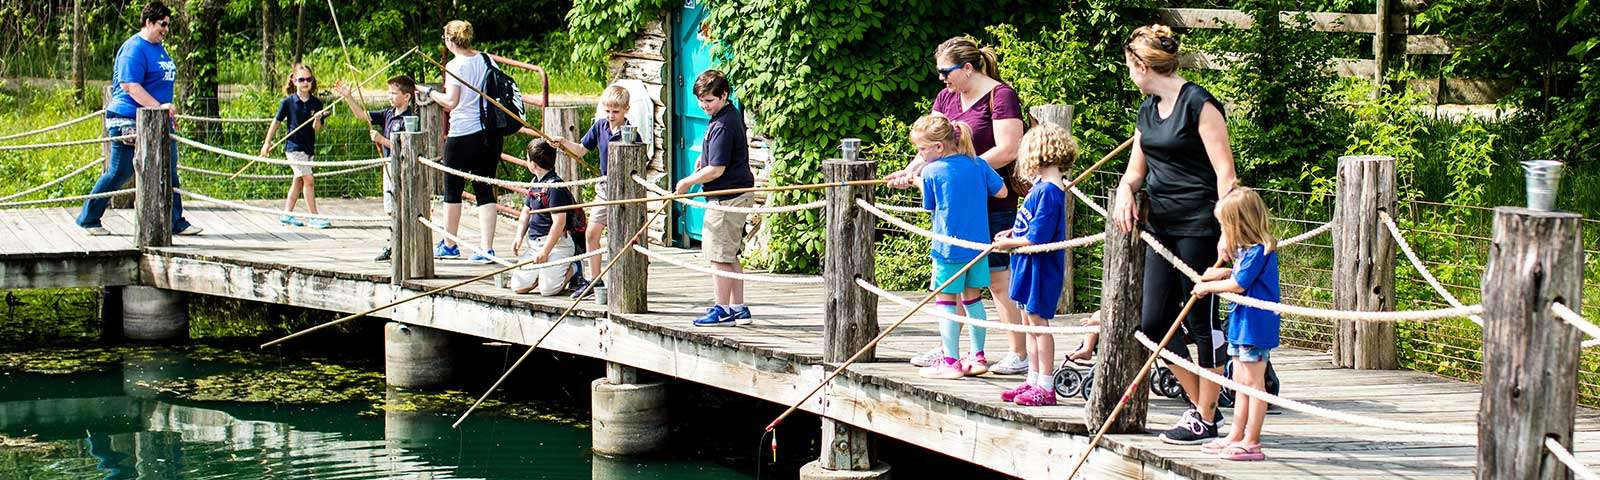 Family-Friendly-Itinerary-Midwest-Vacation-in-Overland-Park